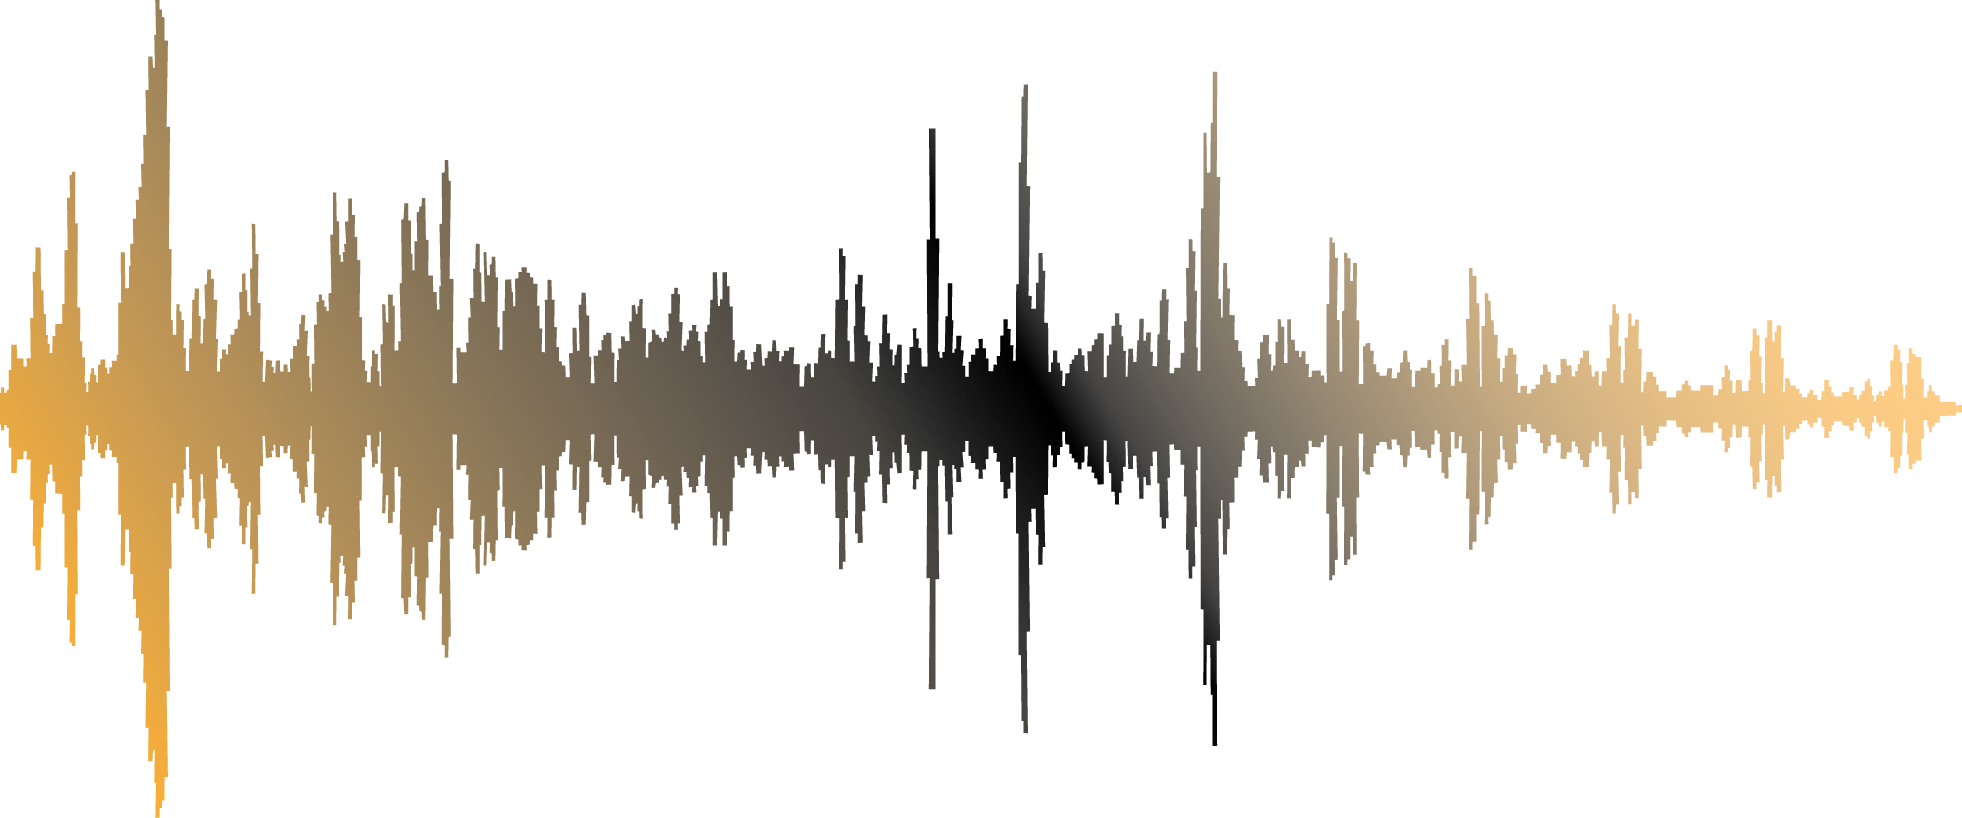 Transparent Sound PNG Image 35763